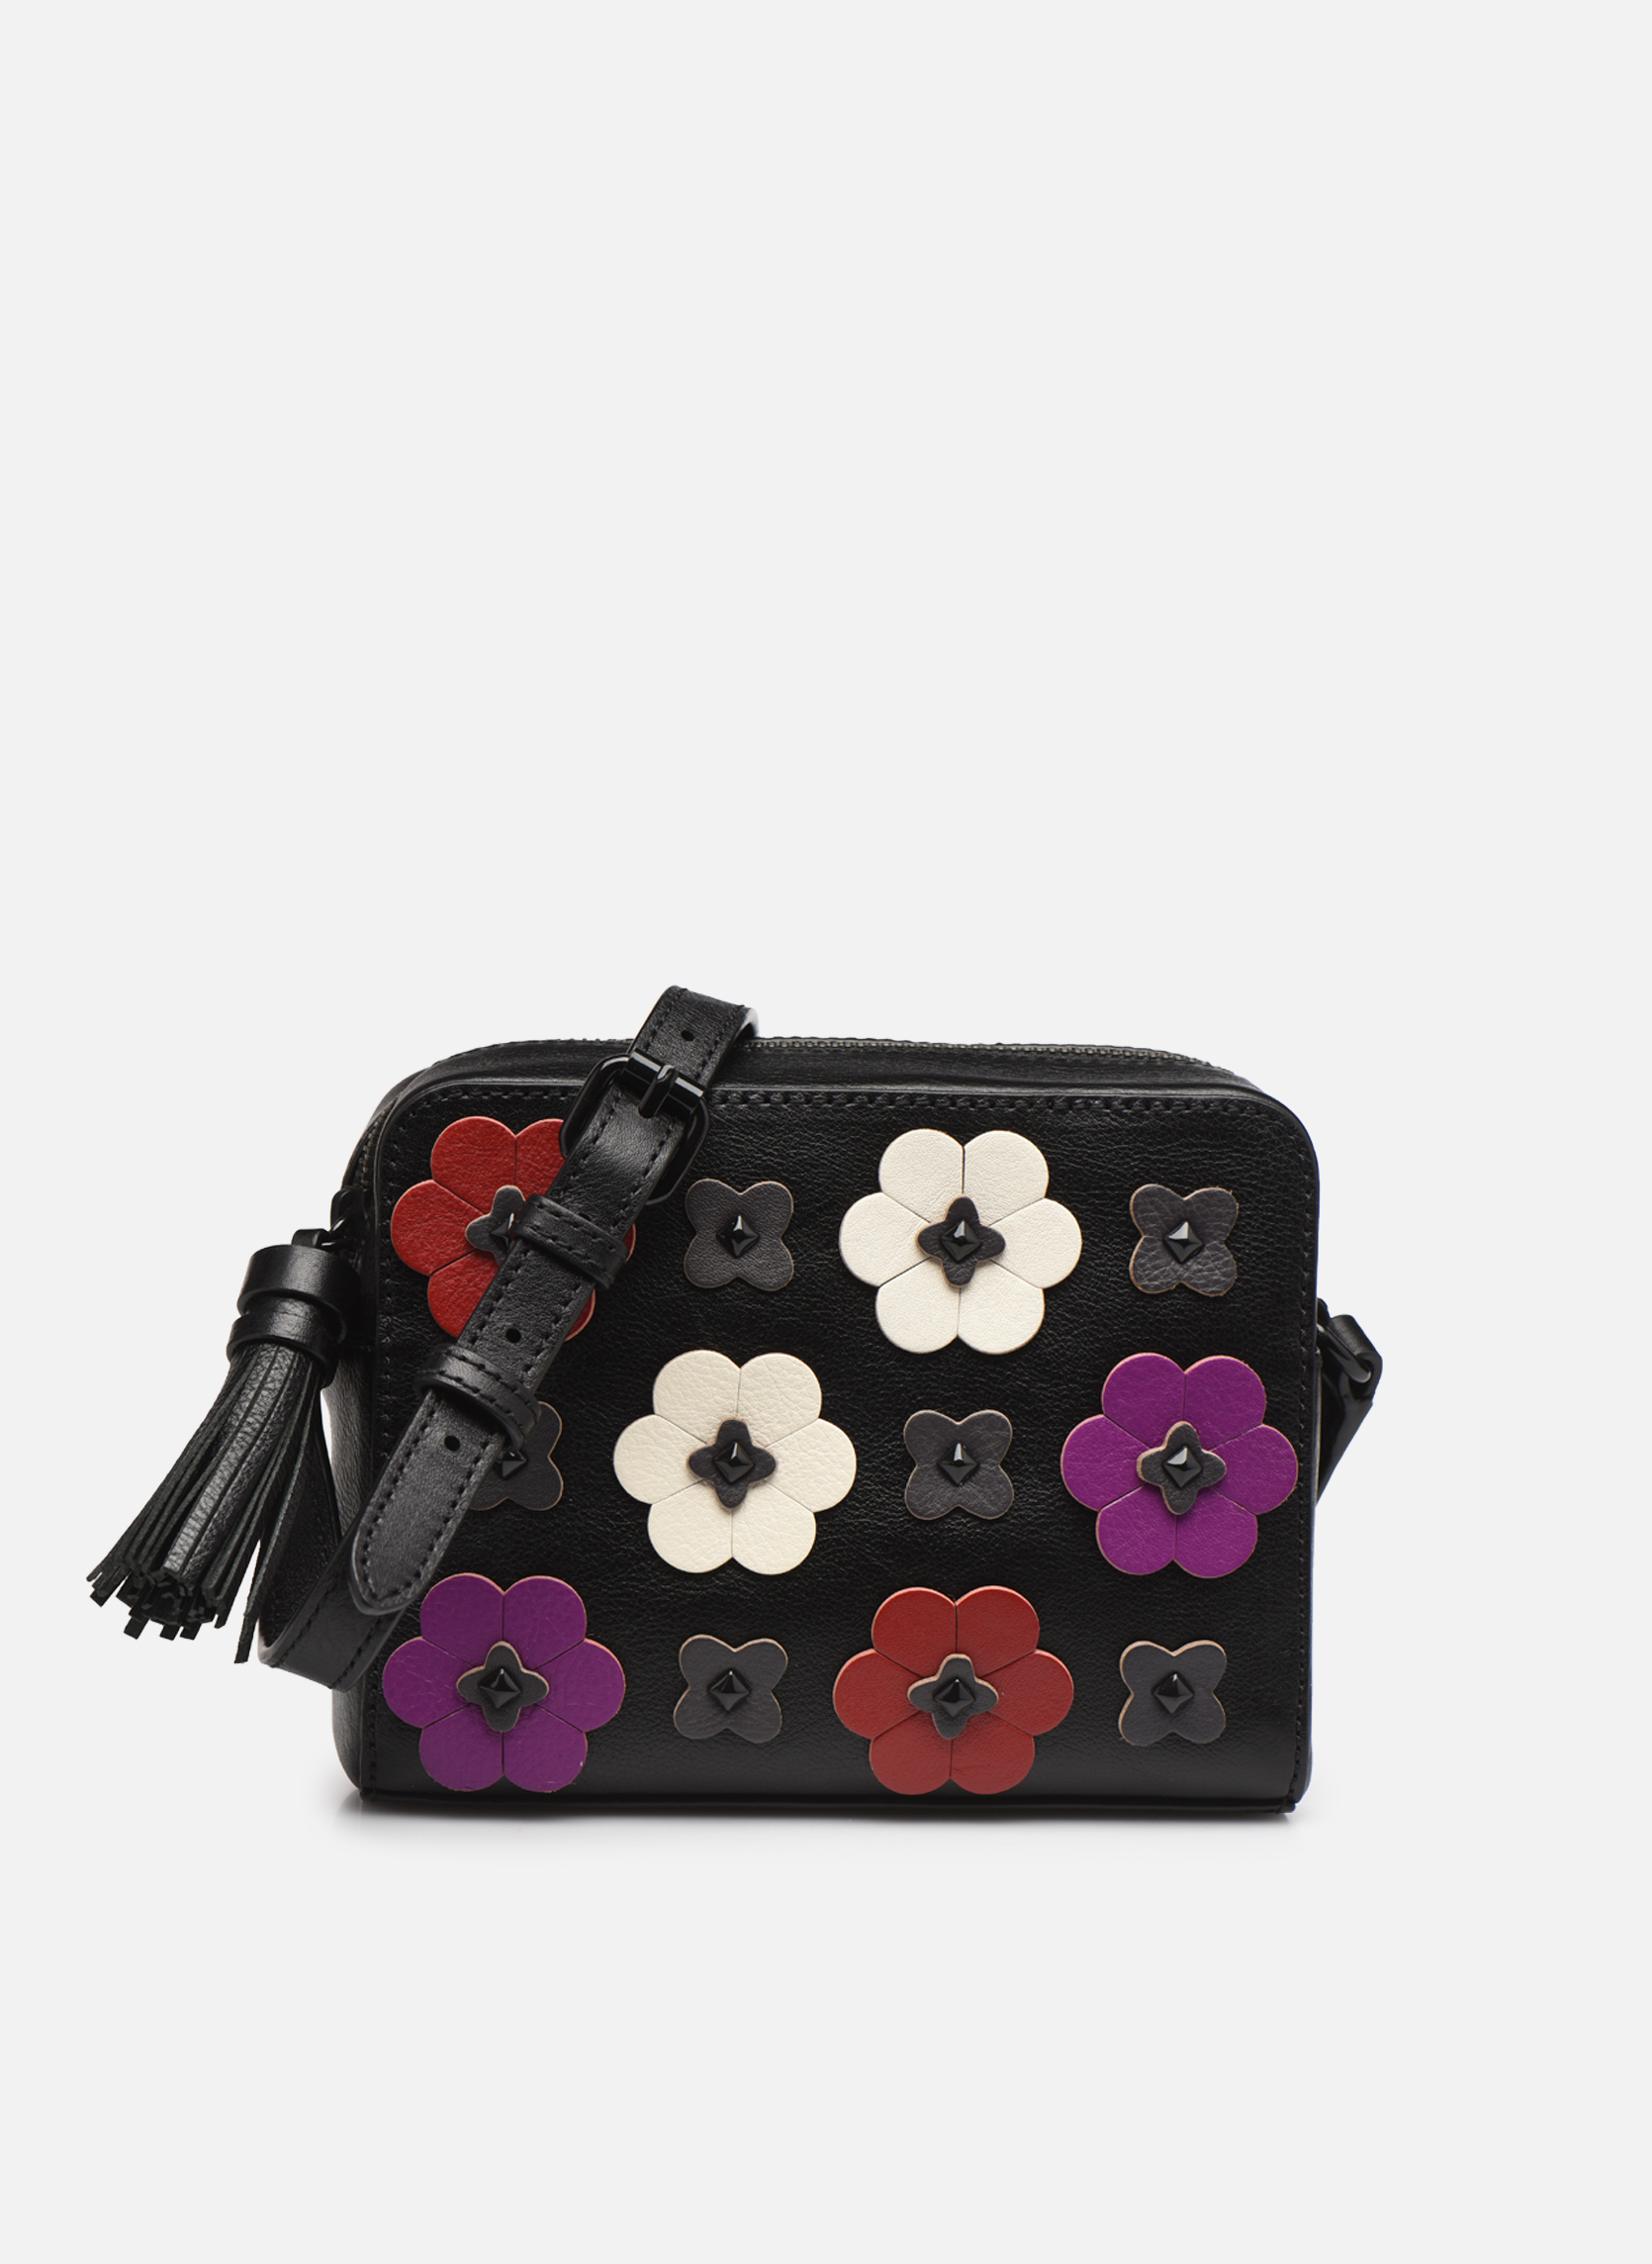 Floral Applique Camera bag Black multi